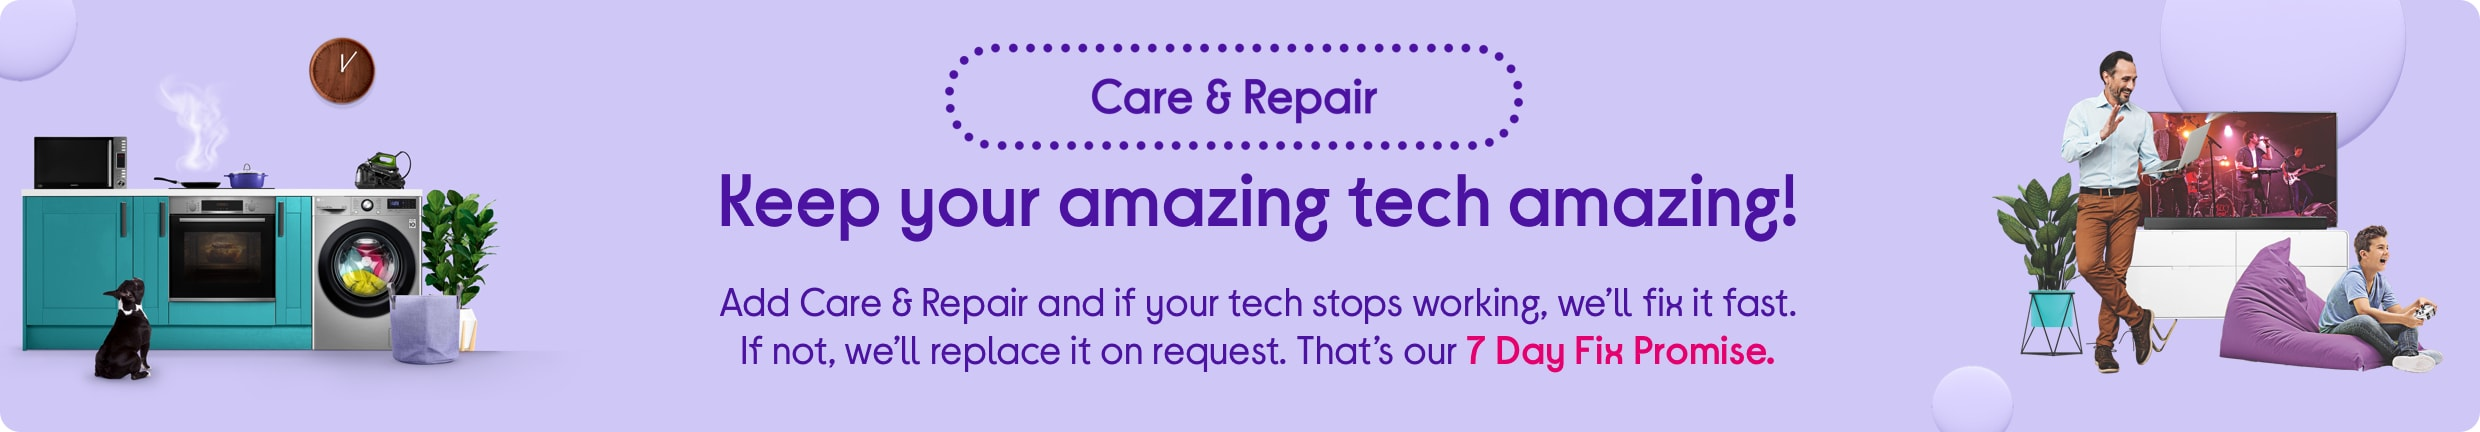 Keep your tech amazing! Add Care & Repair and if your tech stops working, we'll fix it fast.